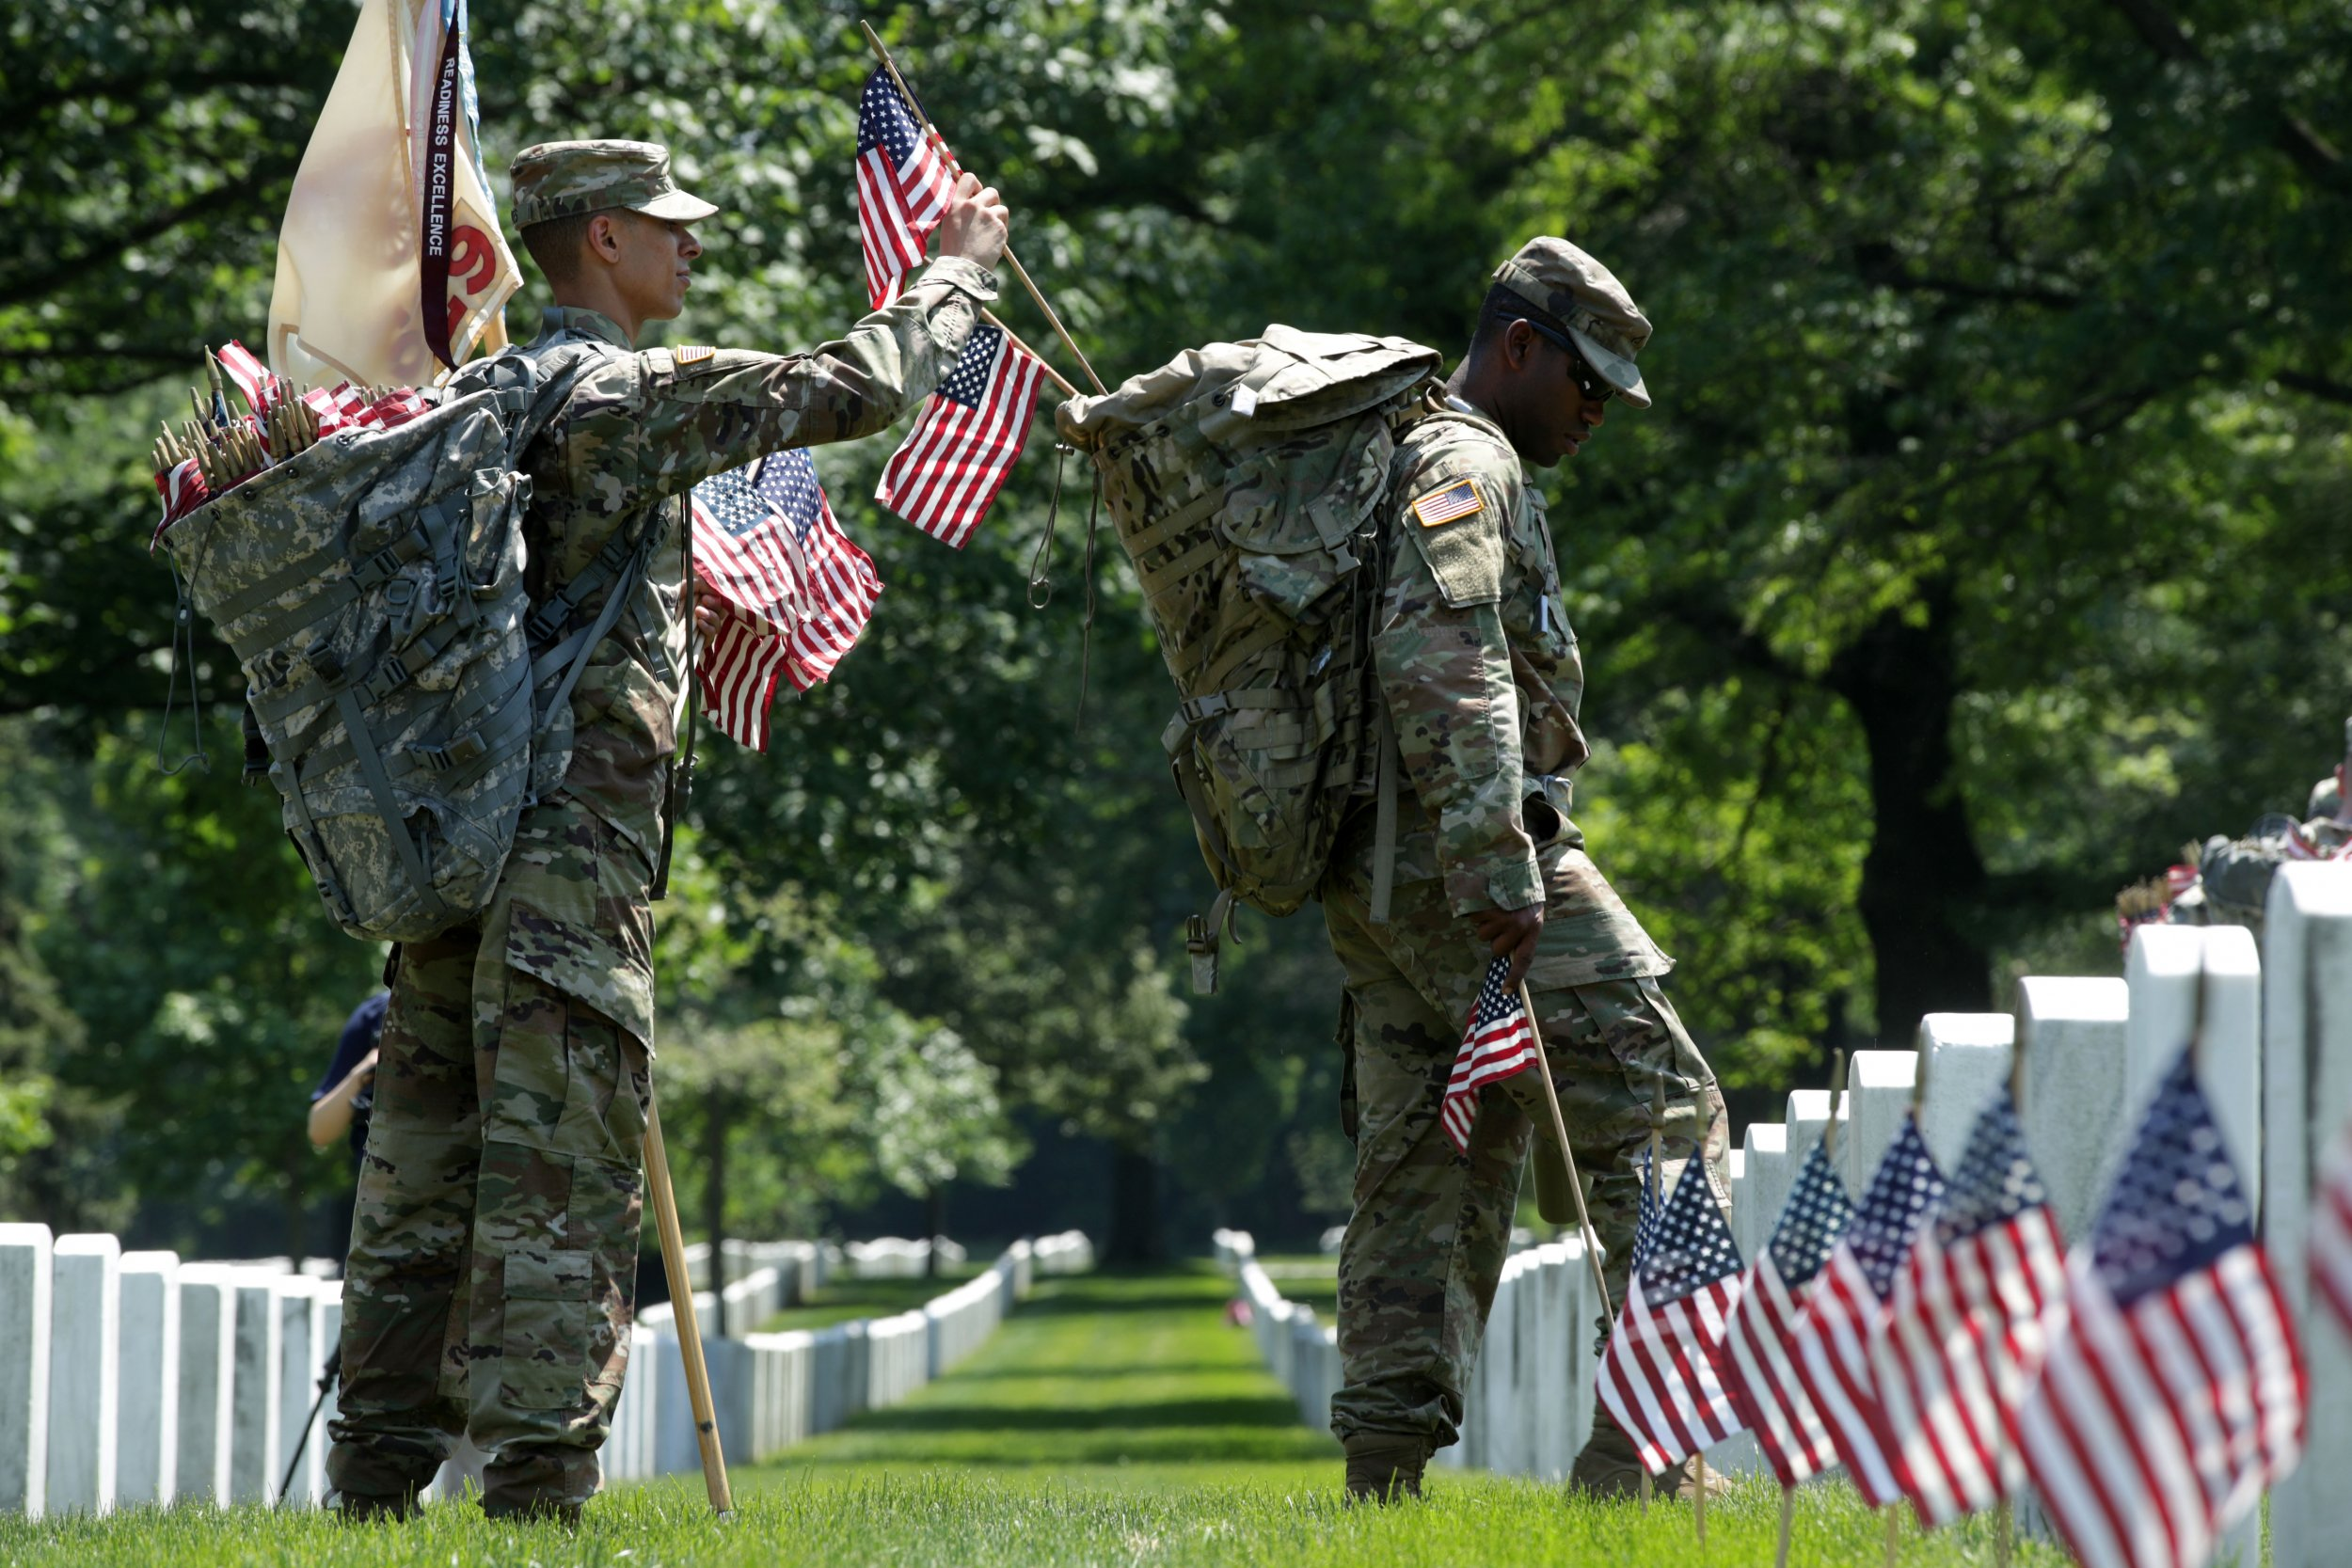 Arlington_soldiers_memorial_day